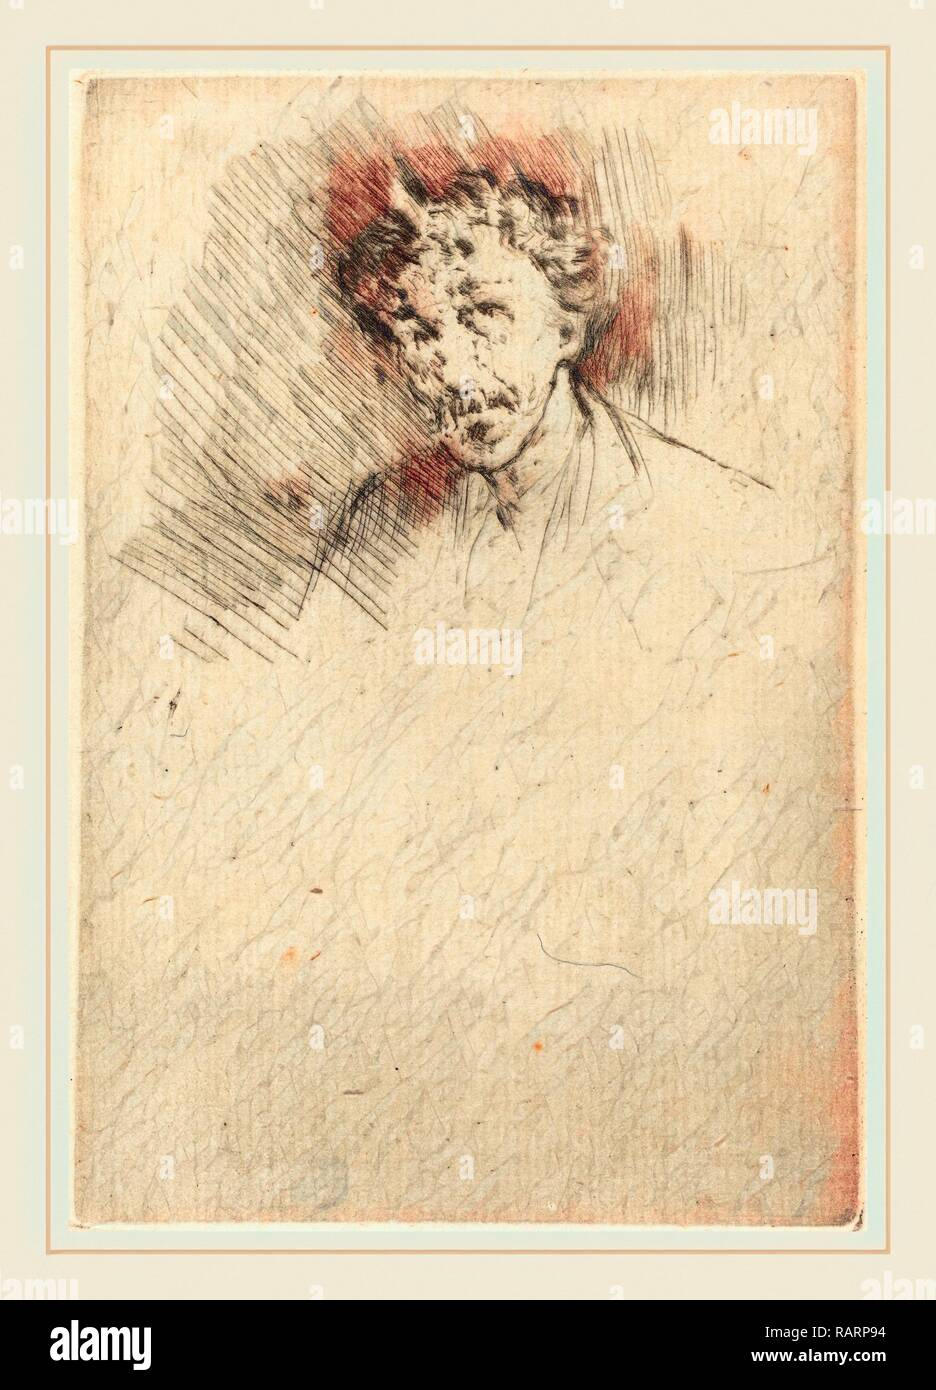 James McNeill Whistler (American, 1834-1903), Whistler with the White Lock, 1879, etching. Reimagined - Stock Image